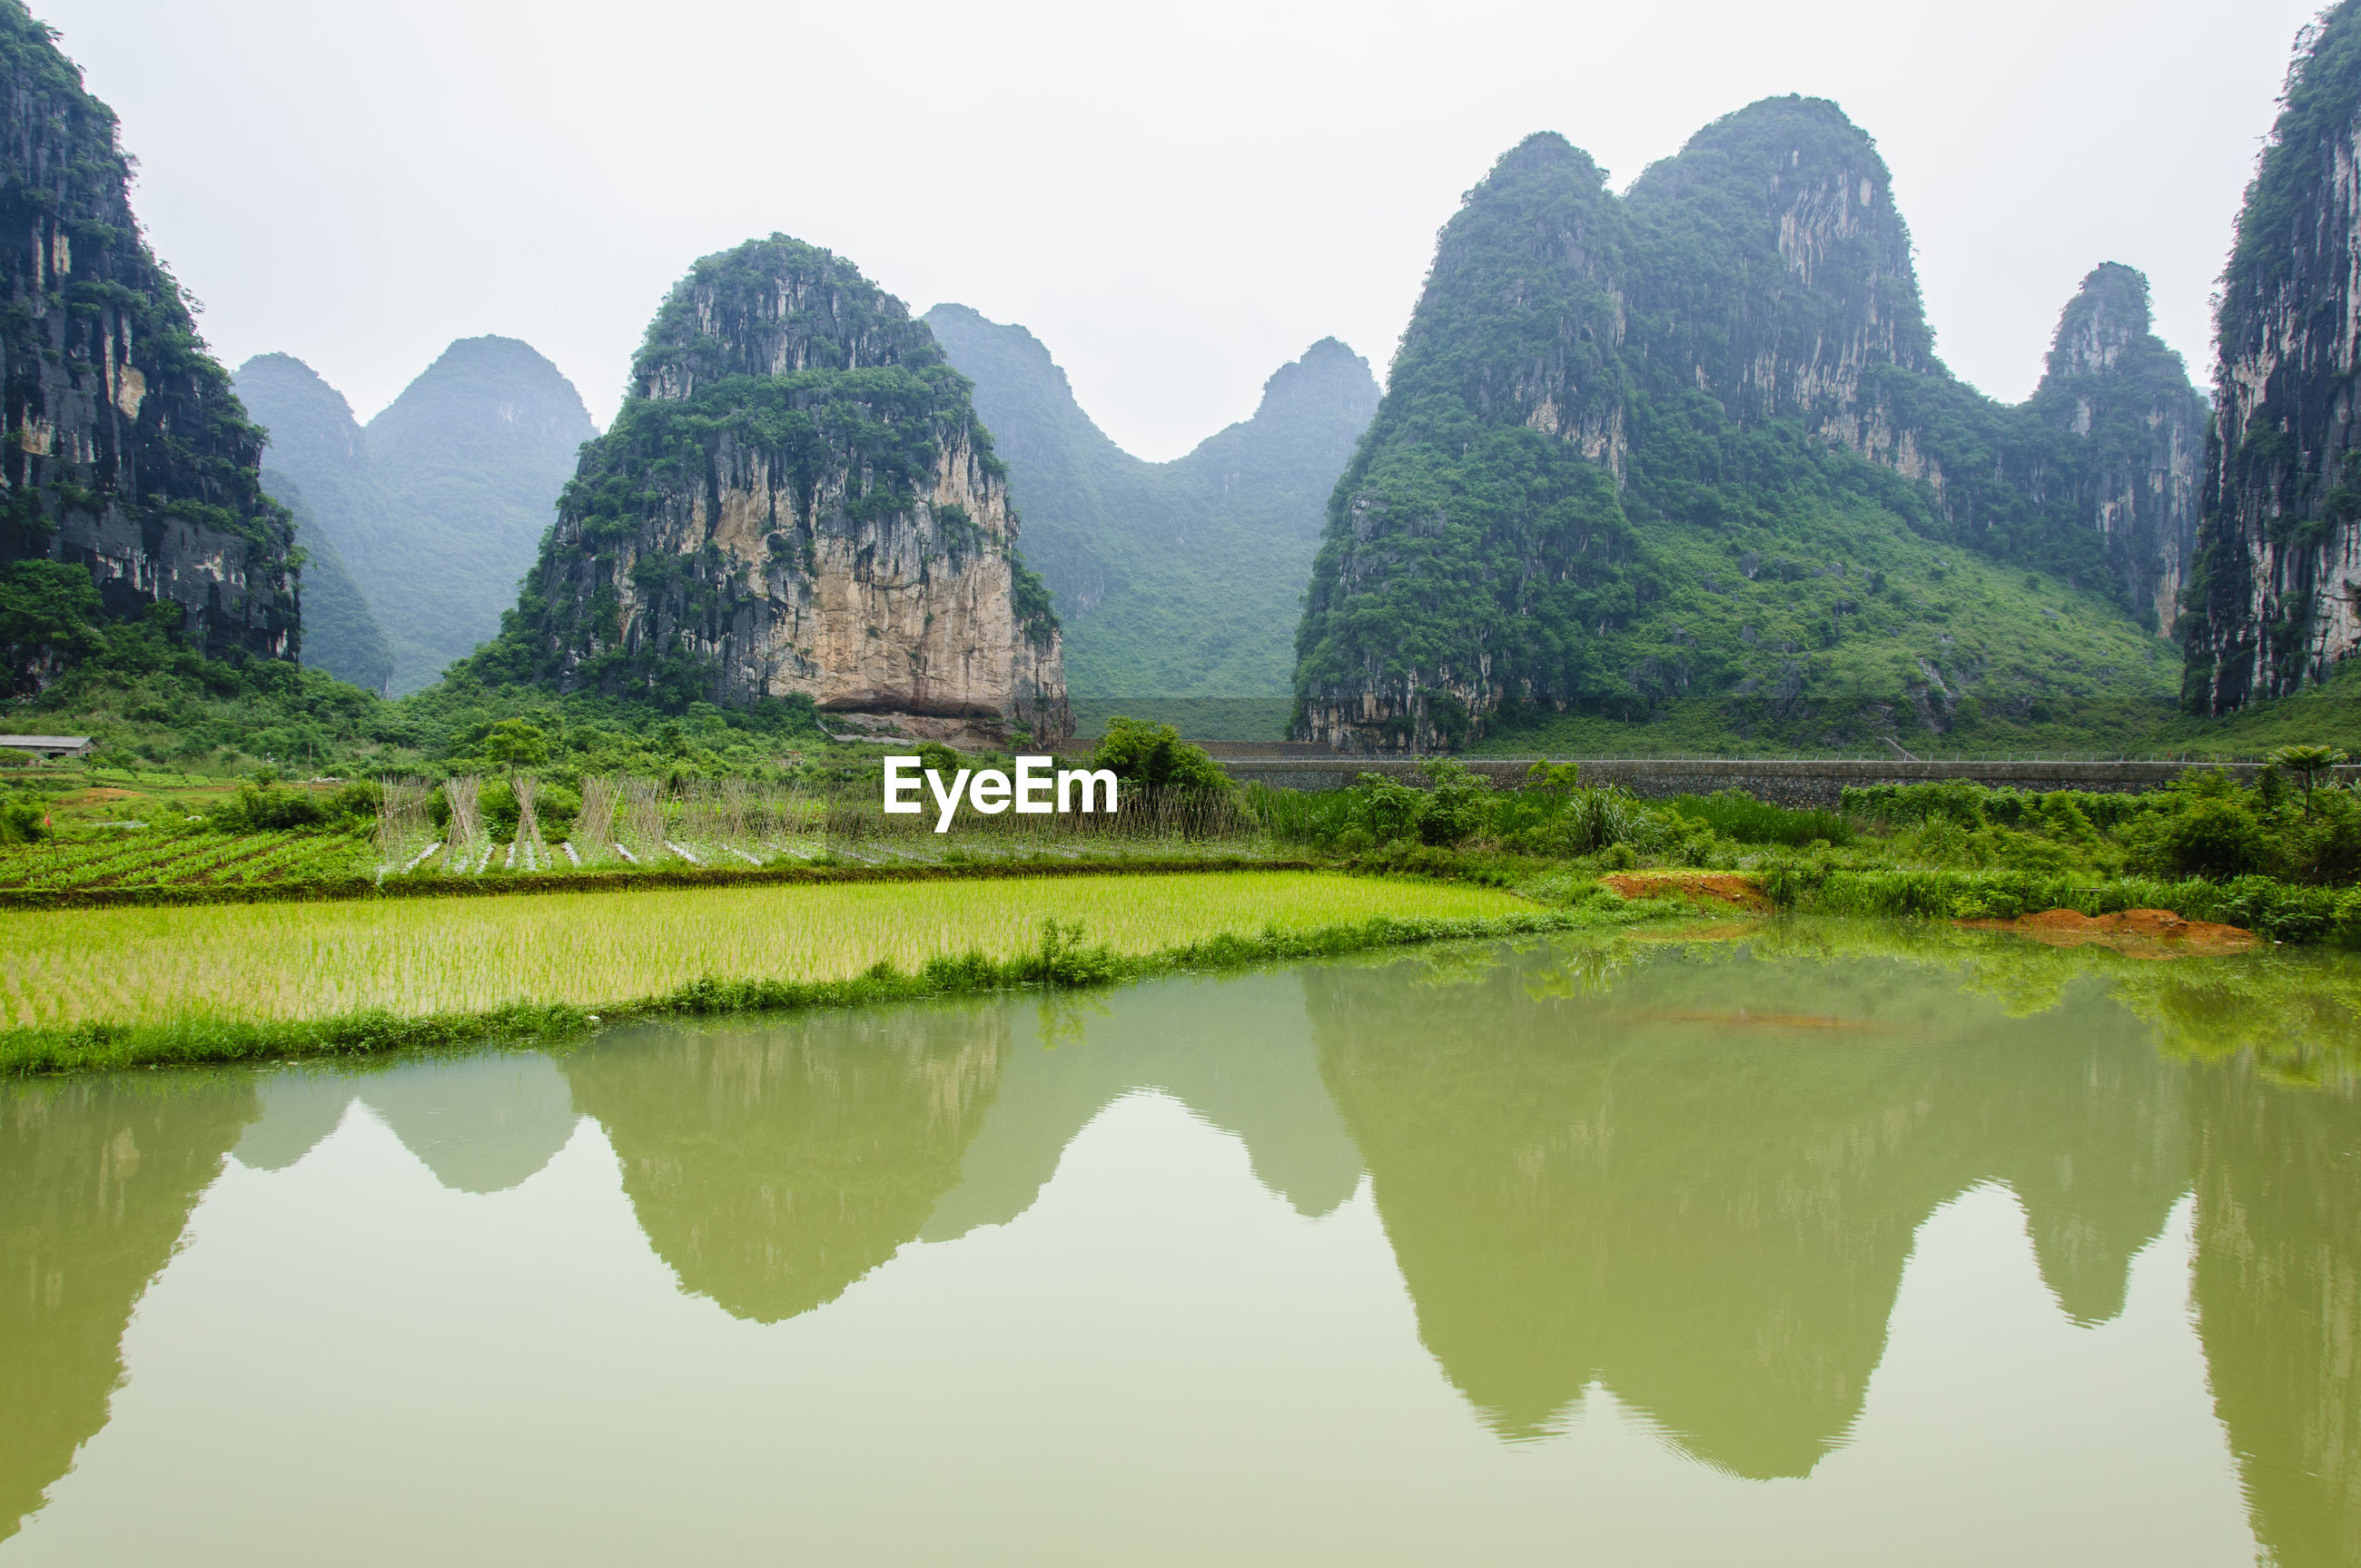 REFLECTION OF MOUNTAIN RANGE IN LAKE AGAINST CLEAR SKY